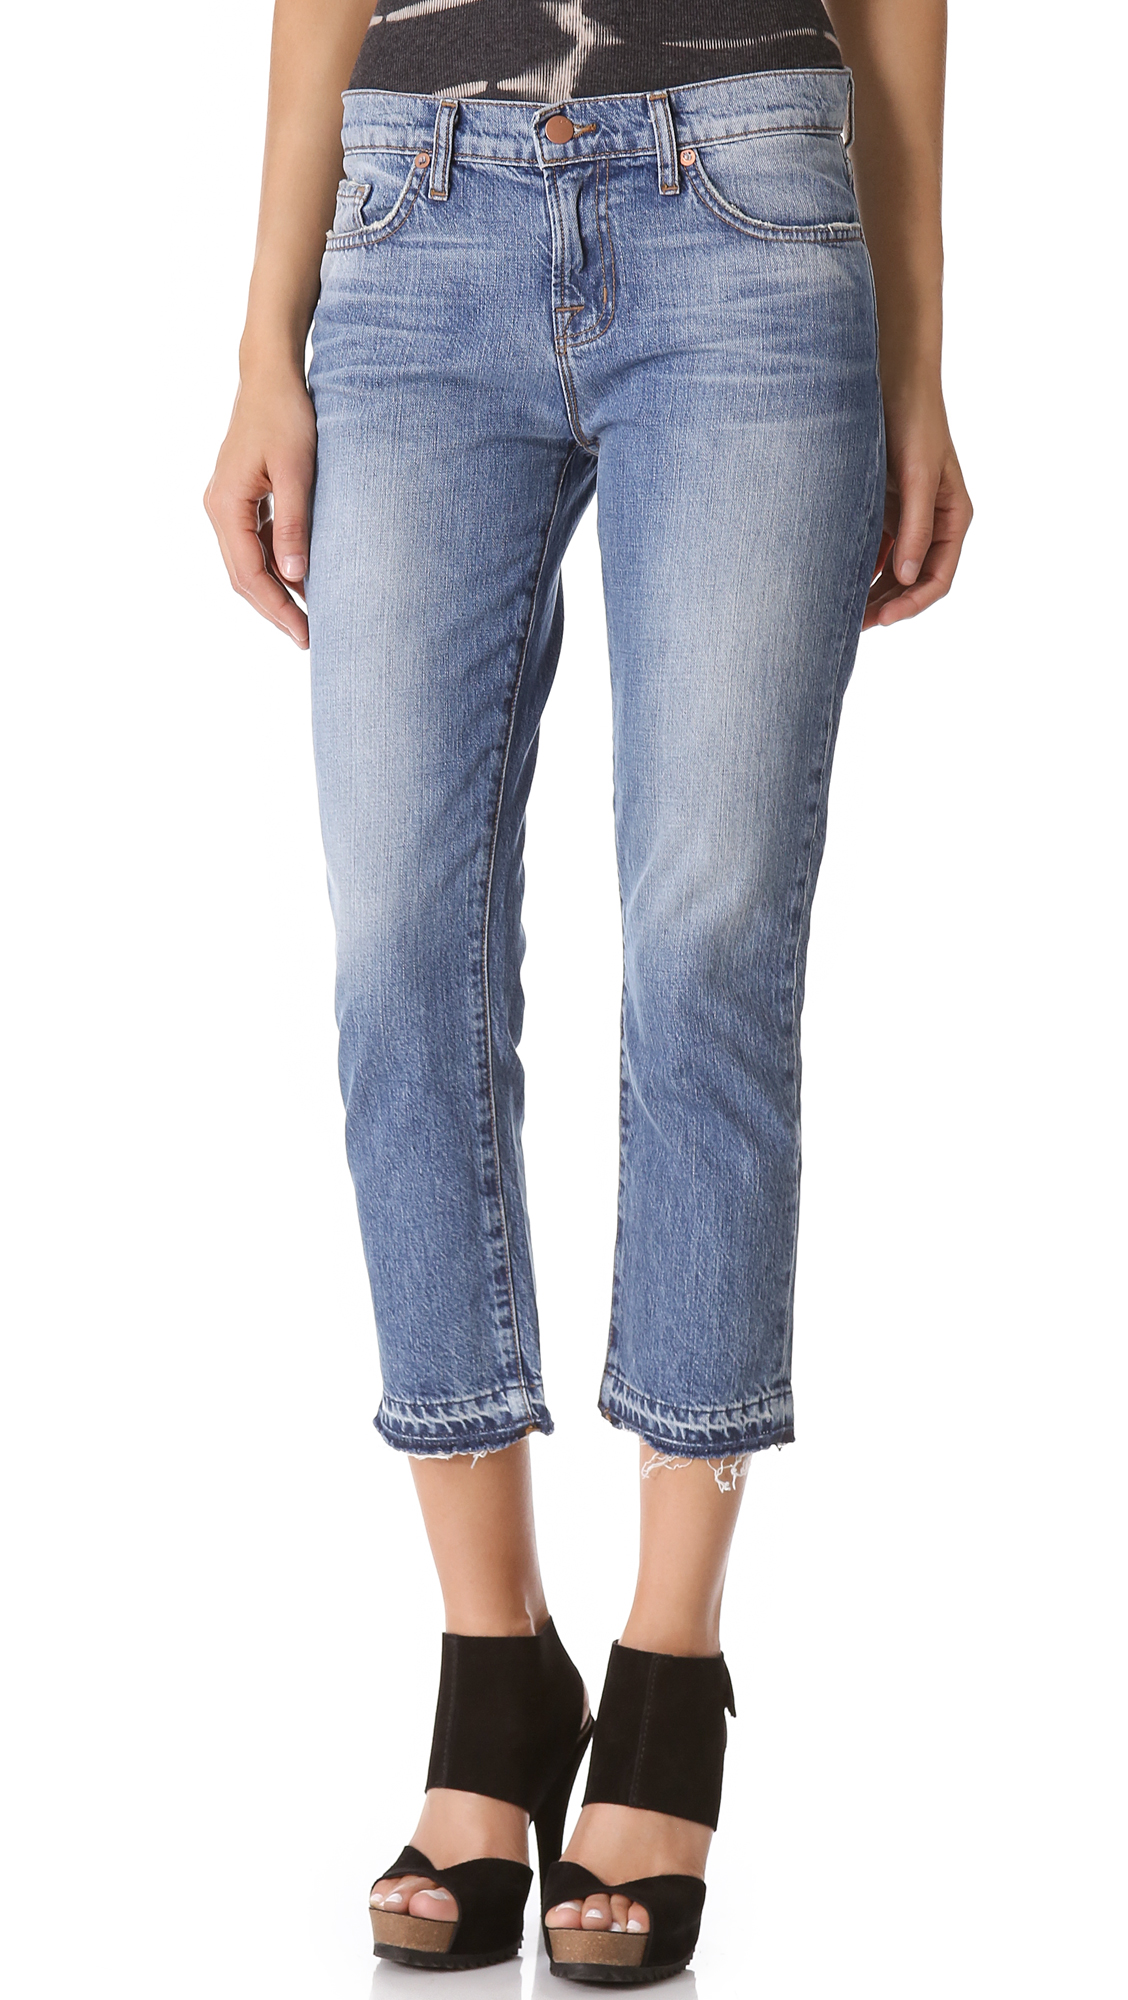 cropped jeans for women - high rise cropped jeans, mid rise cropped jeans, and low rise cro Expand your casual wardrobe options with contemporary high-rise cropped jeans. Enjoy wearing this style of jean as an alternative to your favorite bootcut jeans for added variety.